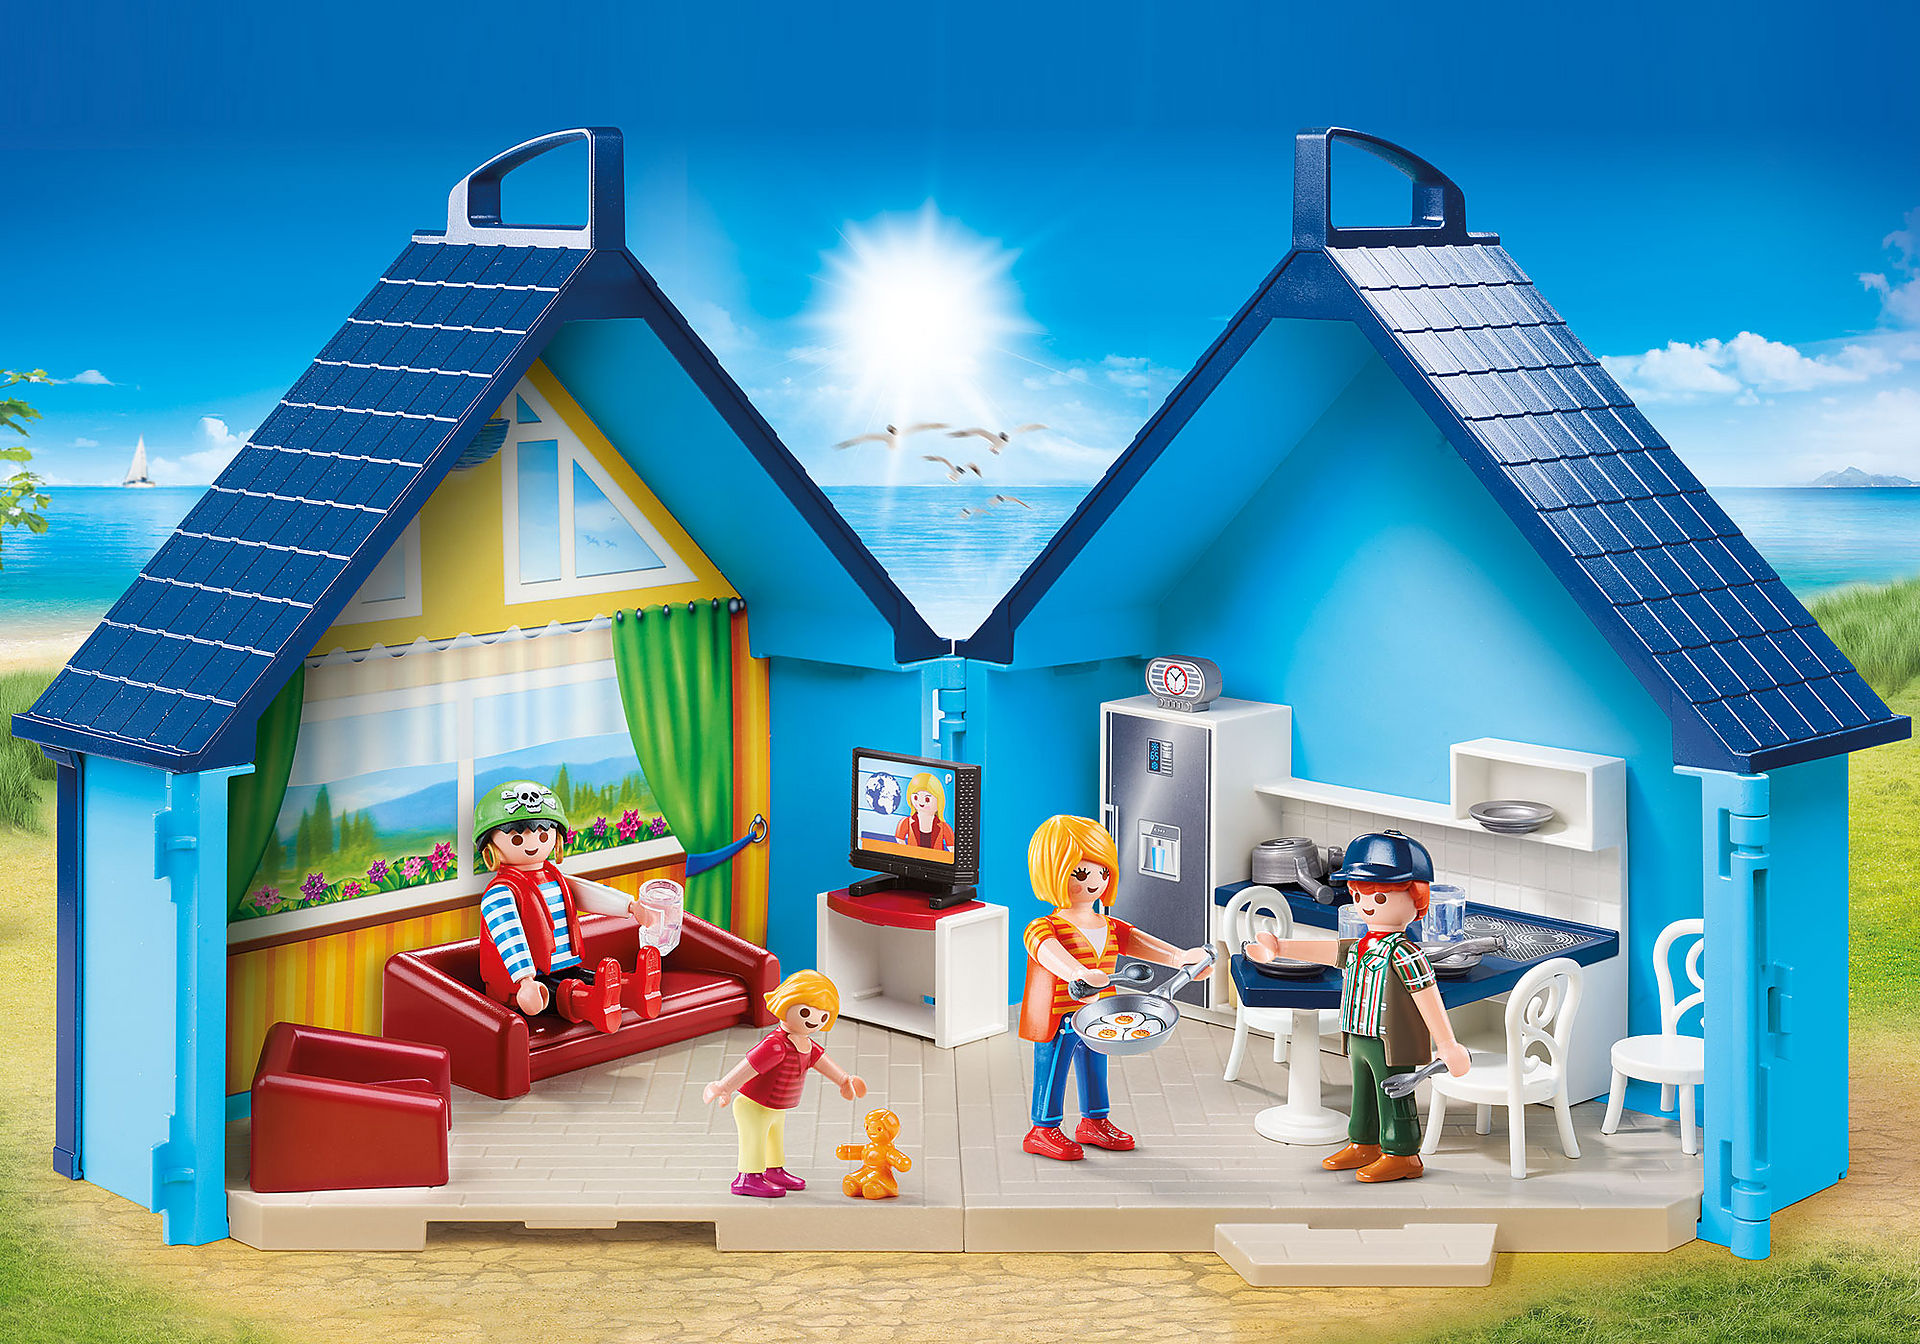 70219 PLAYMOBIL FunPark Summerhouse Take Along zoom image1